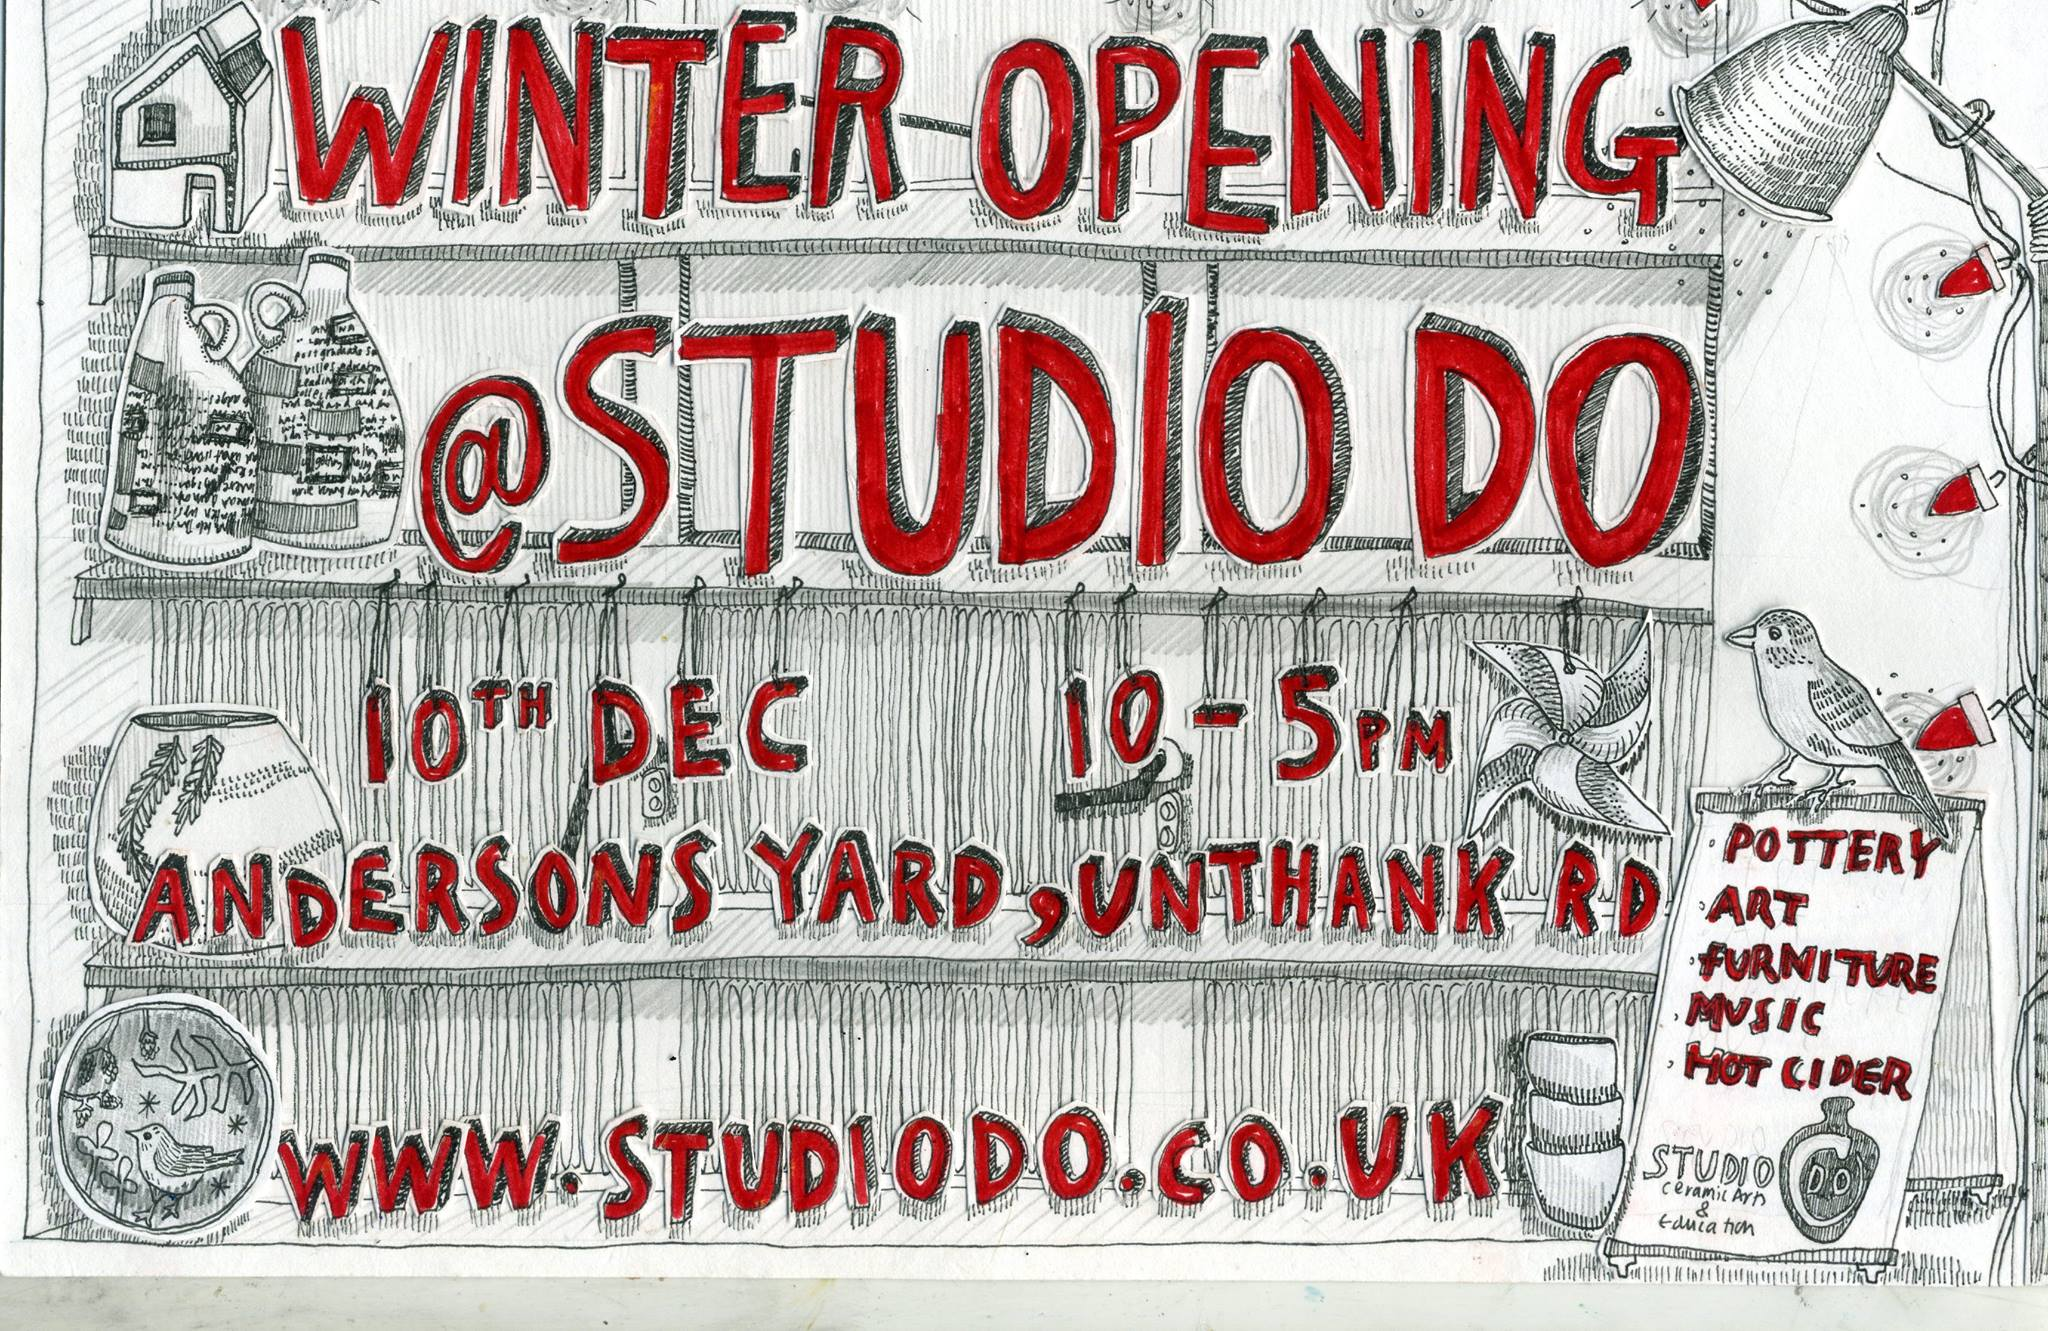 Winter Opening with Studiodo  Anderson s Yard  Unthank Rd  Norwich   Art  Exhibitions UKWinter Opening with Studiodo  Anderson s Yard  Unthank Rd  Norwich  . Artist Studio Furniture Uk. Home Design Ideas